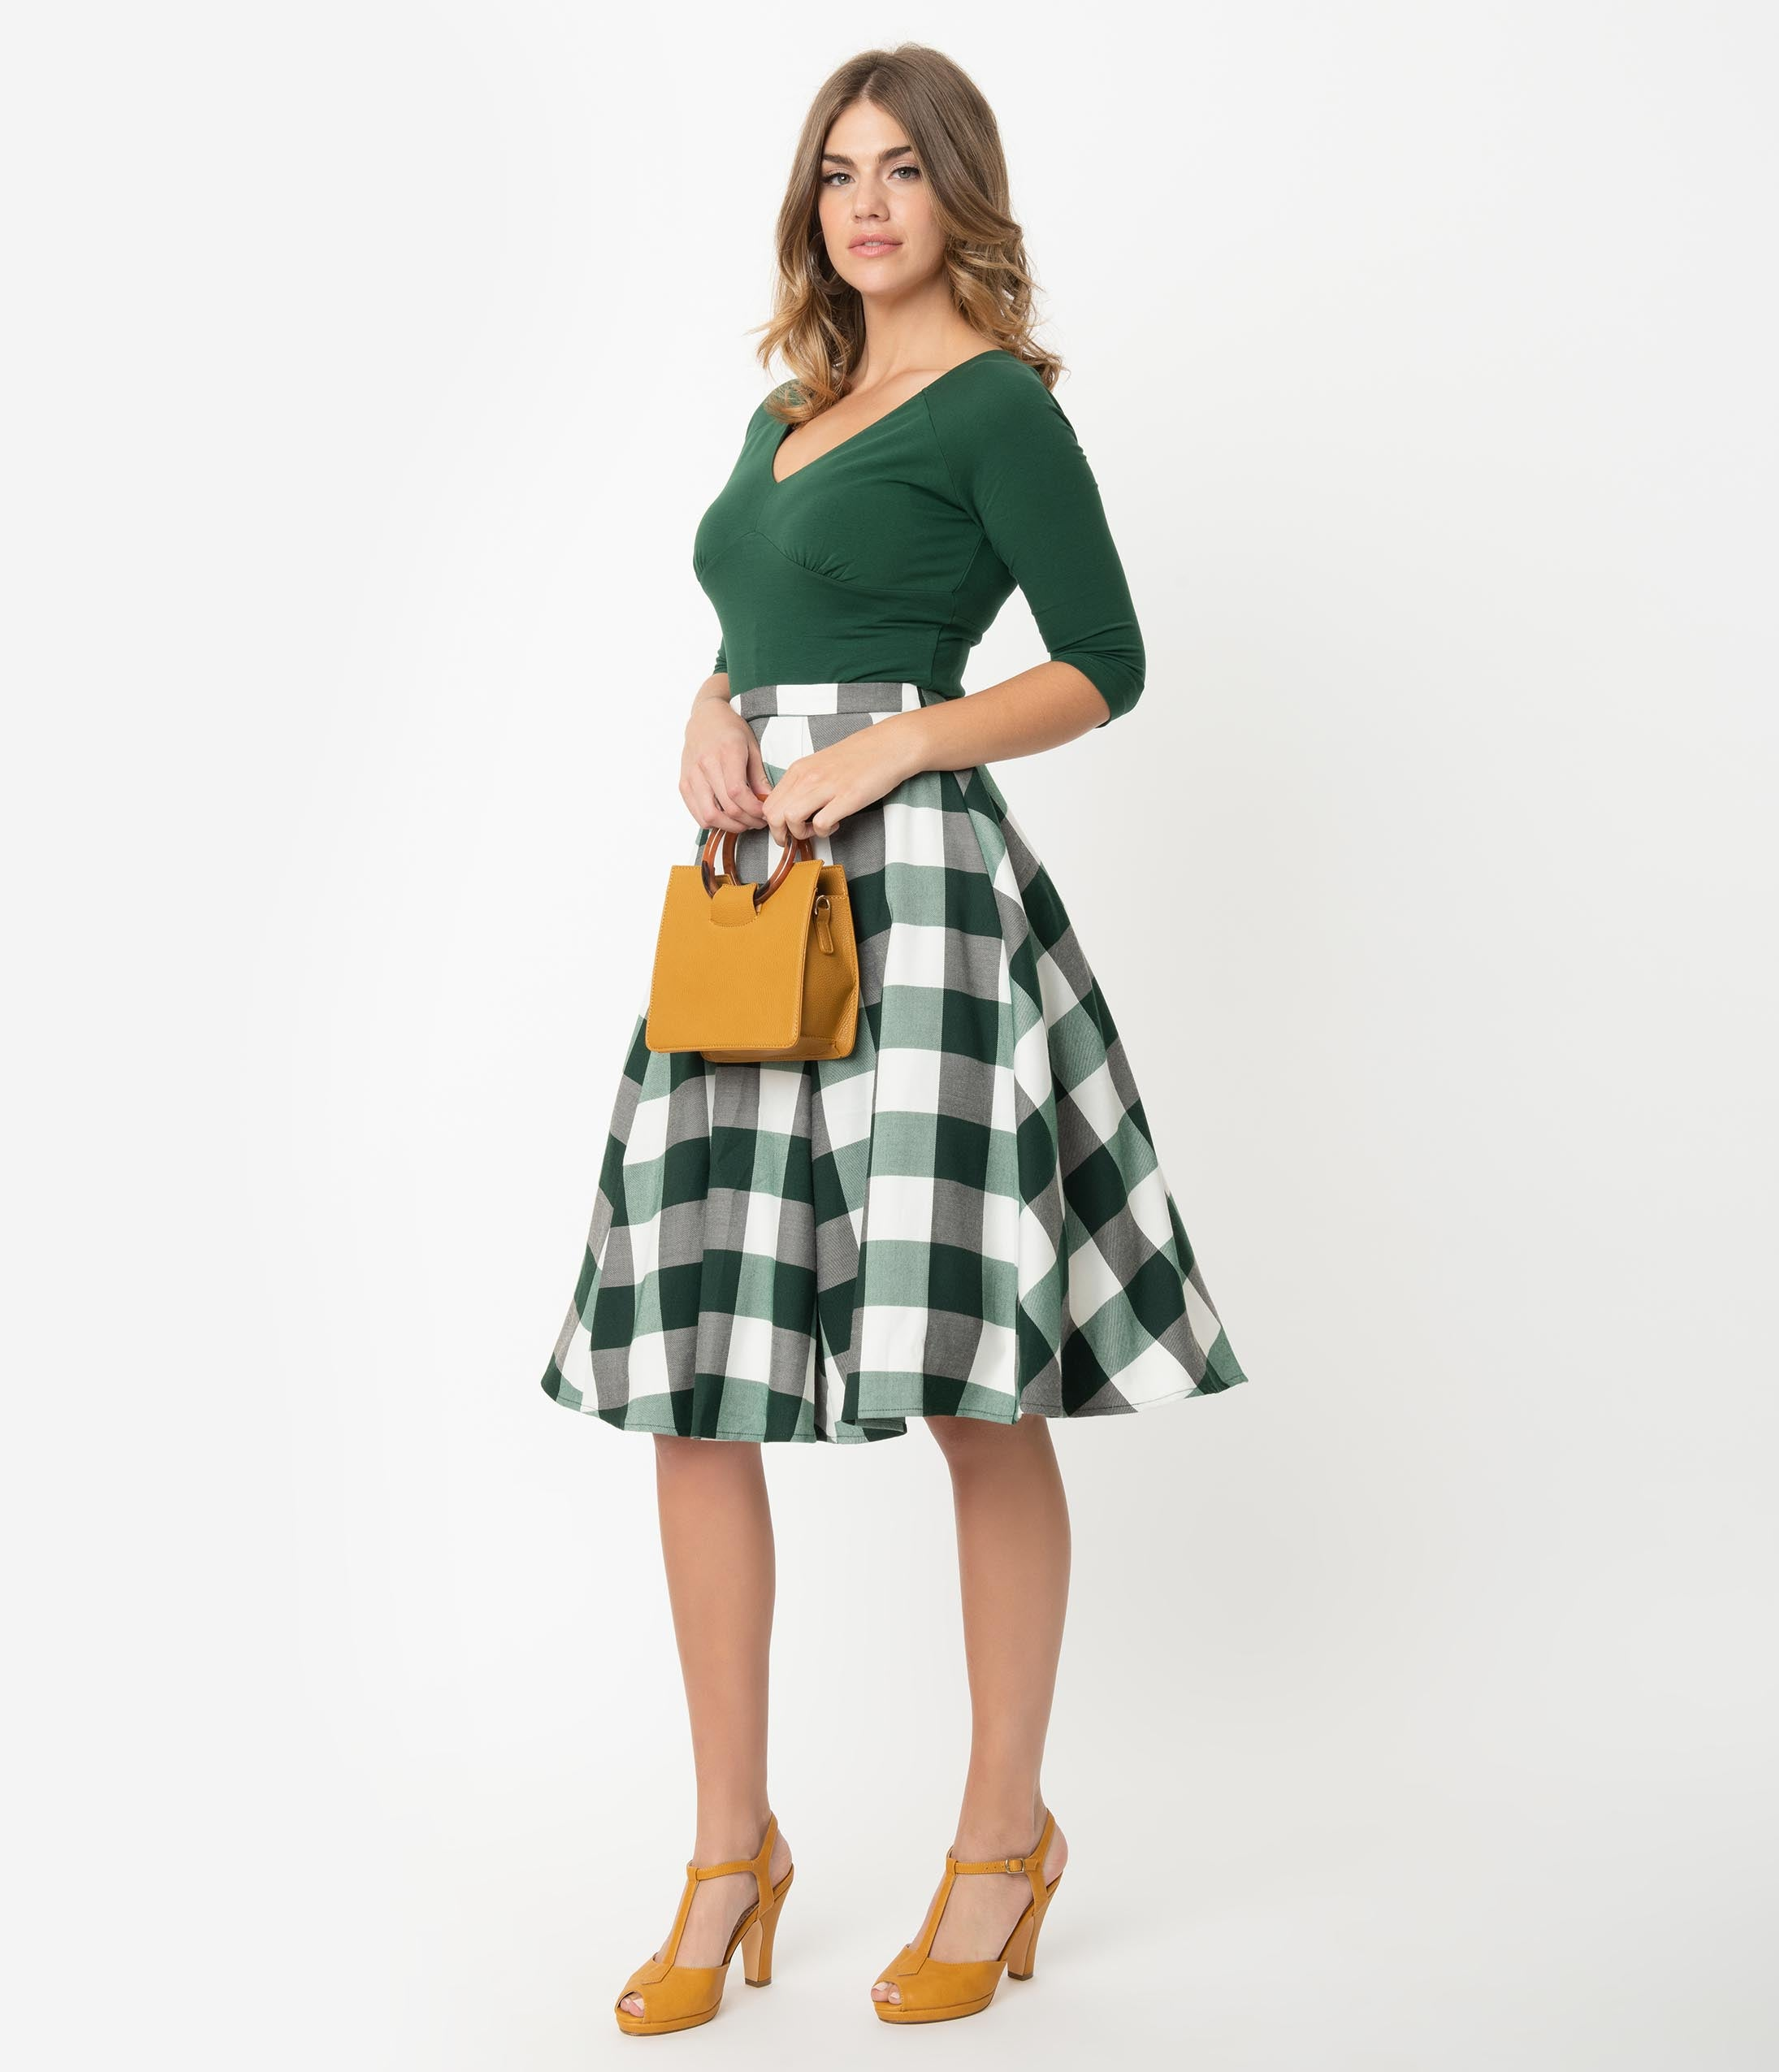 1950s Swing Skirt, Poodle Skirt, Pencil Skirts Collectif 1950S Style Green  White Gingham Matilde Swing Skirt $52.00 AT vintagedancer.com